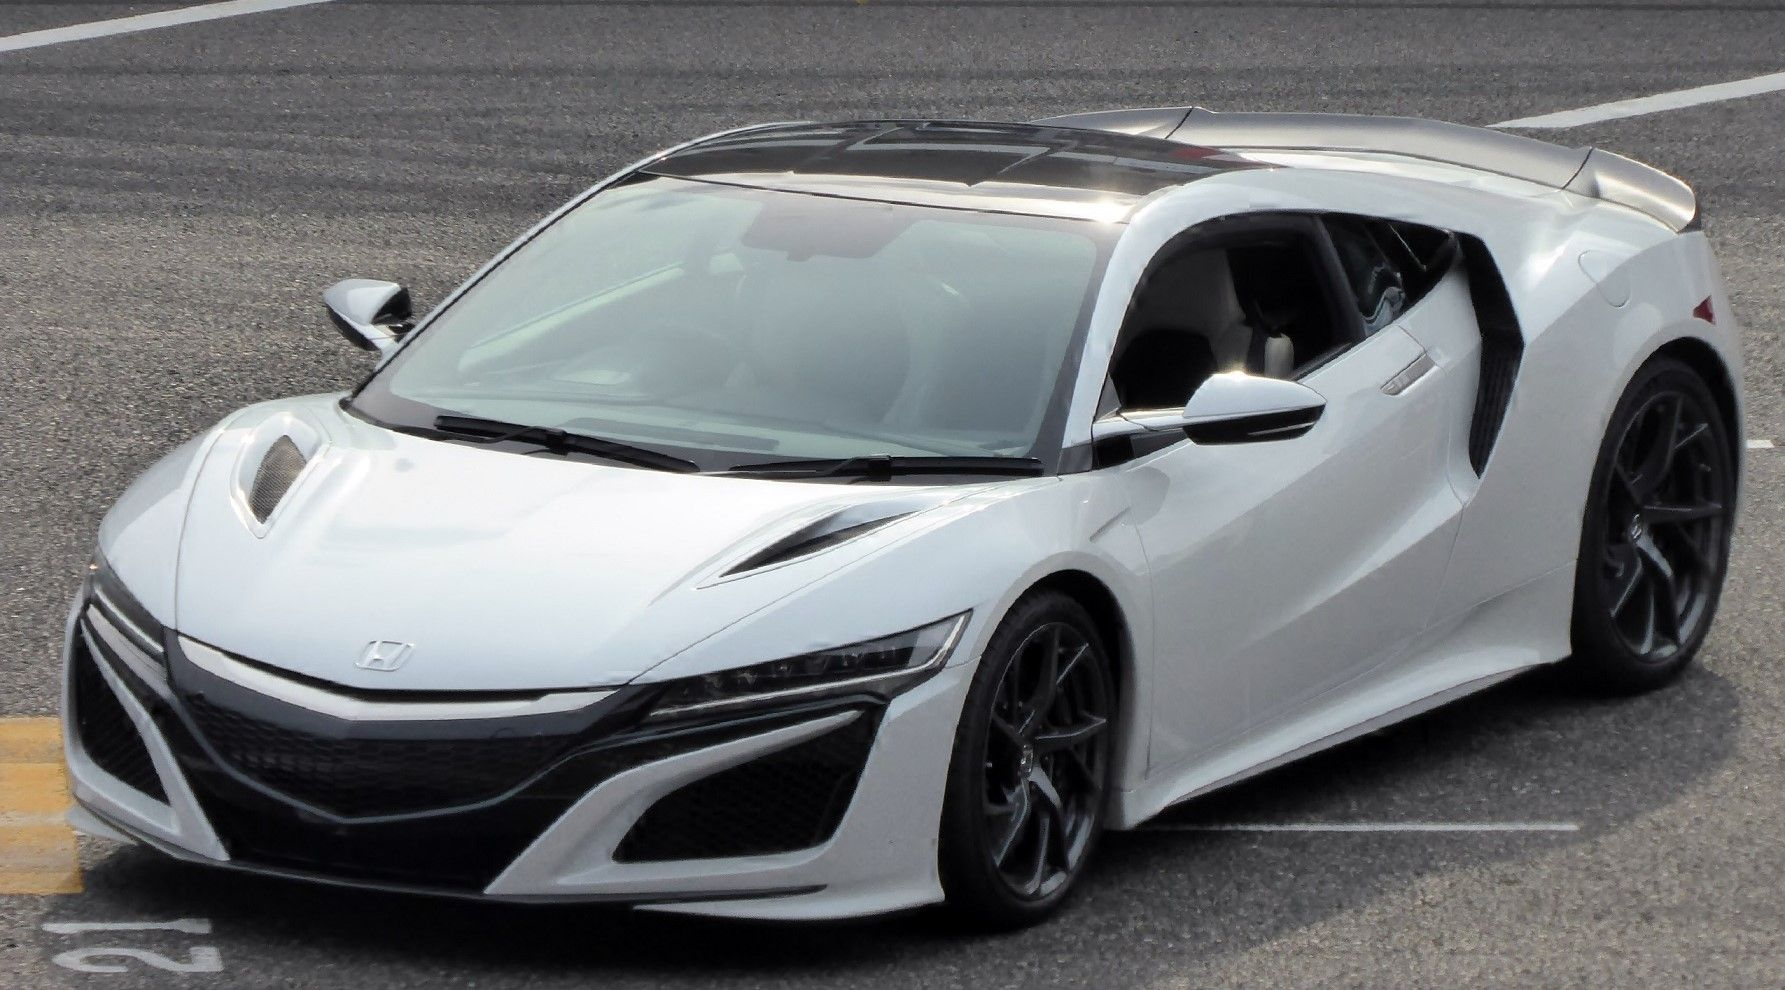 EL MOTOR DEL HONDA NSX PREMIADO EN LOS INTERNATIONAL ENGINE OF THE YEAR AWARDS 2017